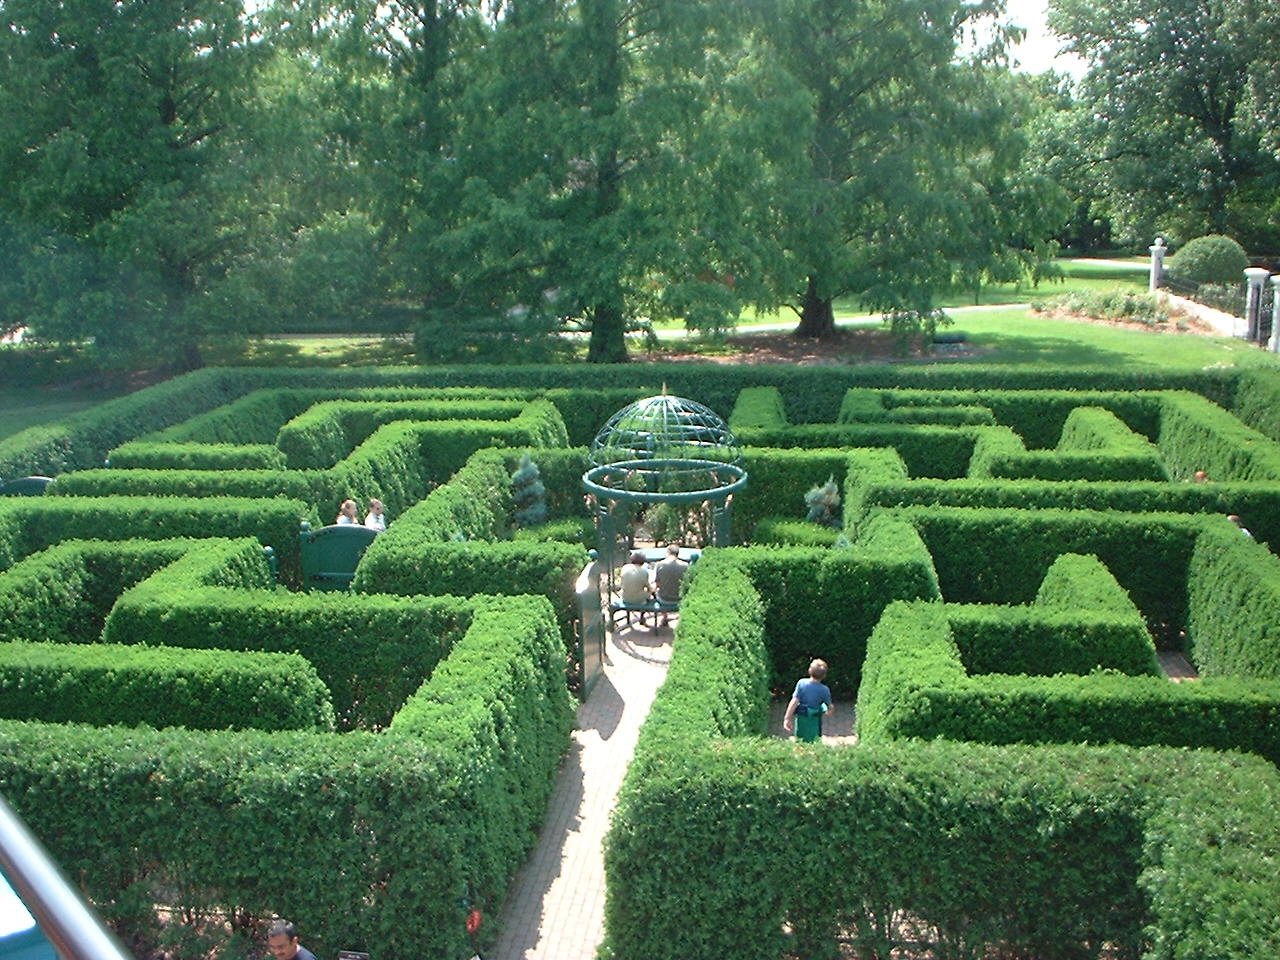 File Hedge Maze St Louis Botanical Gardens St Louis Missouri June 2003 Jpg Wikipedia